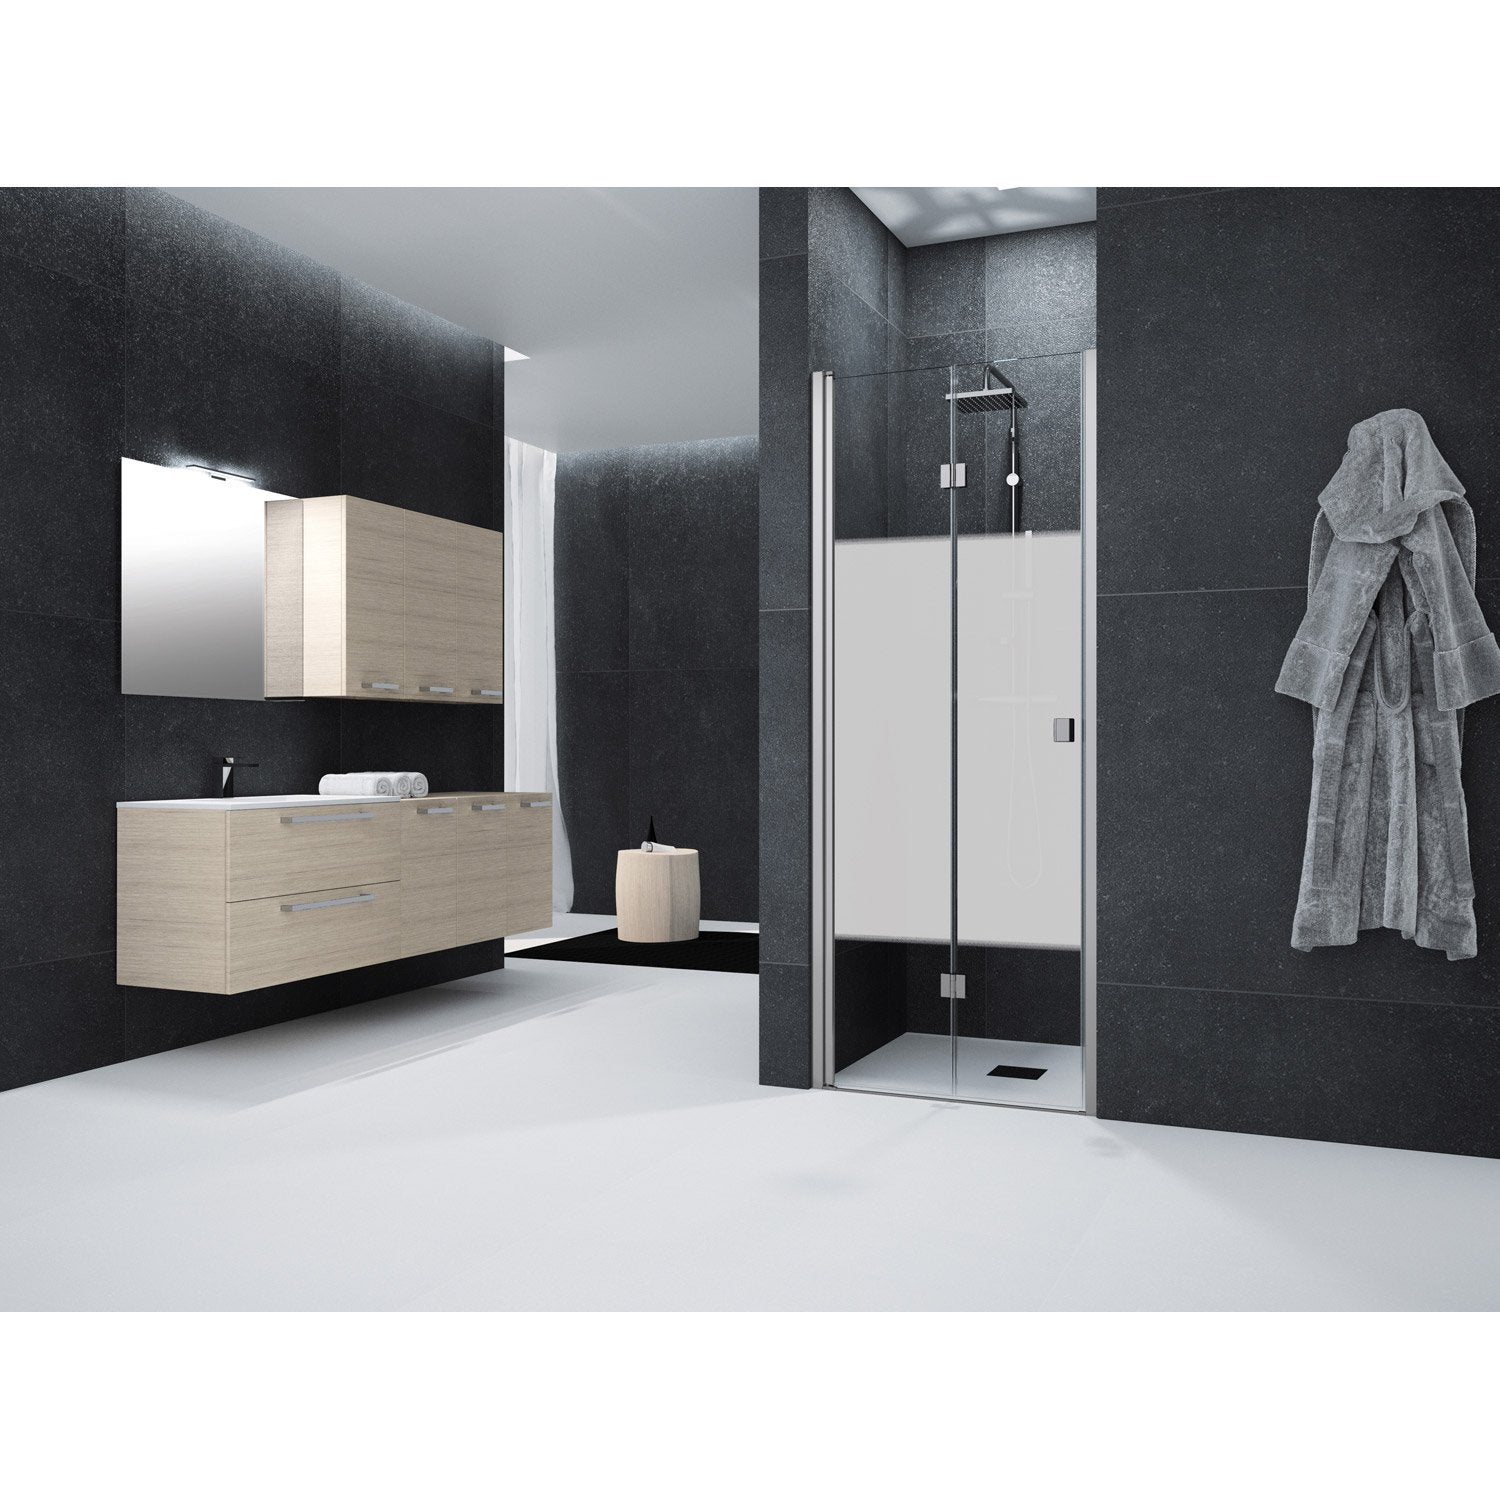 porte de douche pivot pliante 70 cm s rigraphi neo leroy merlin. Black Bedroom Furniture Sets. Home Design Ideas